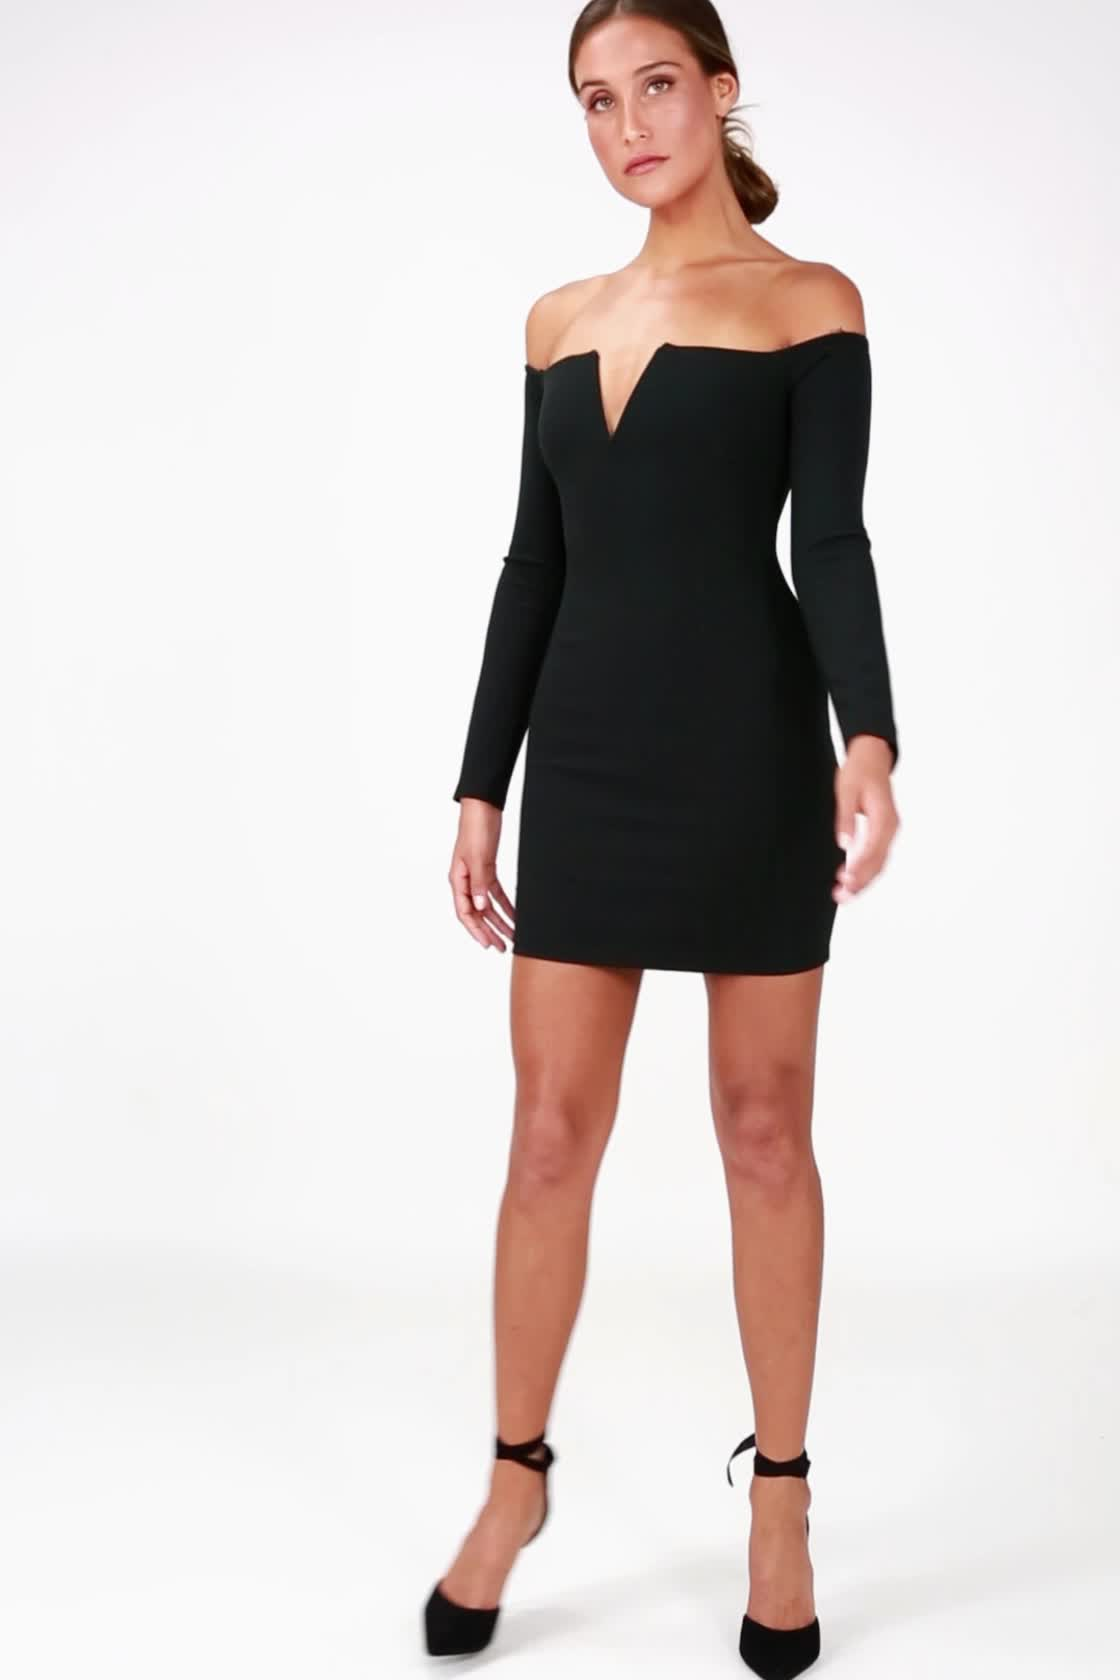 97c7bcc2ba0a ... Over the Swoon Black Off-the-Shoulder Bodycon Dress